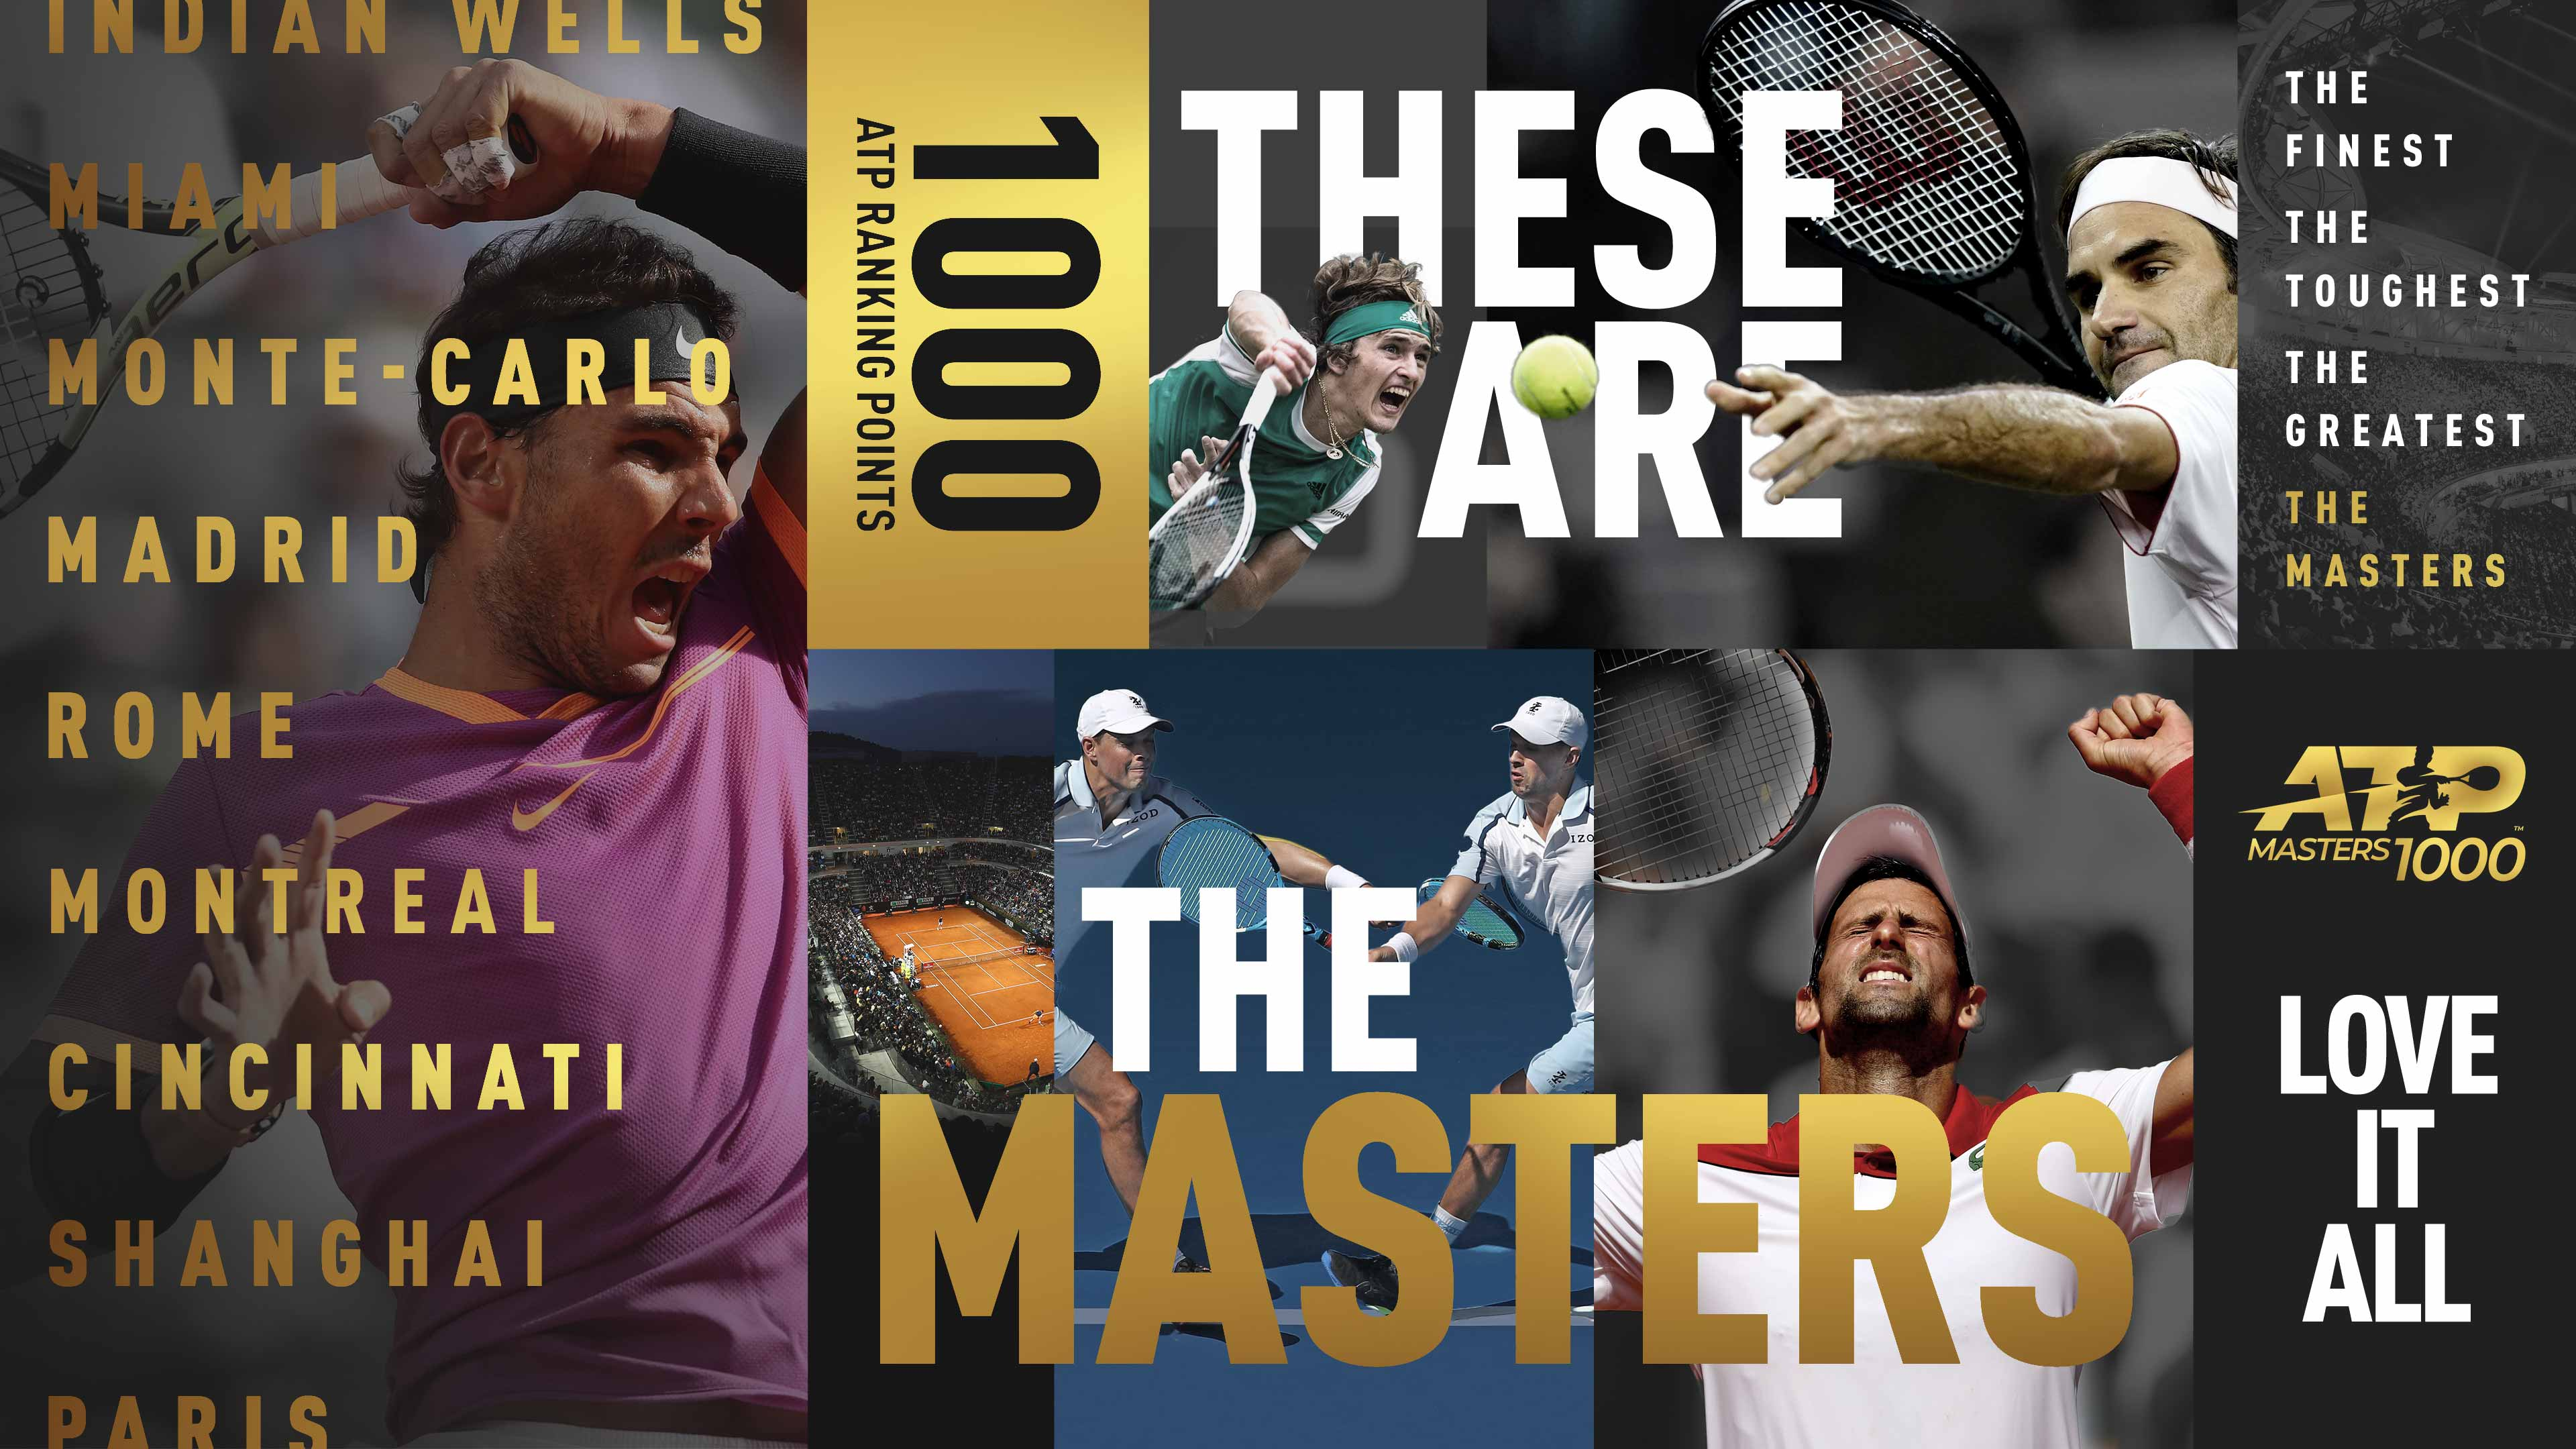 These Are The Masters, ATP Masters 1000 tennis